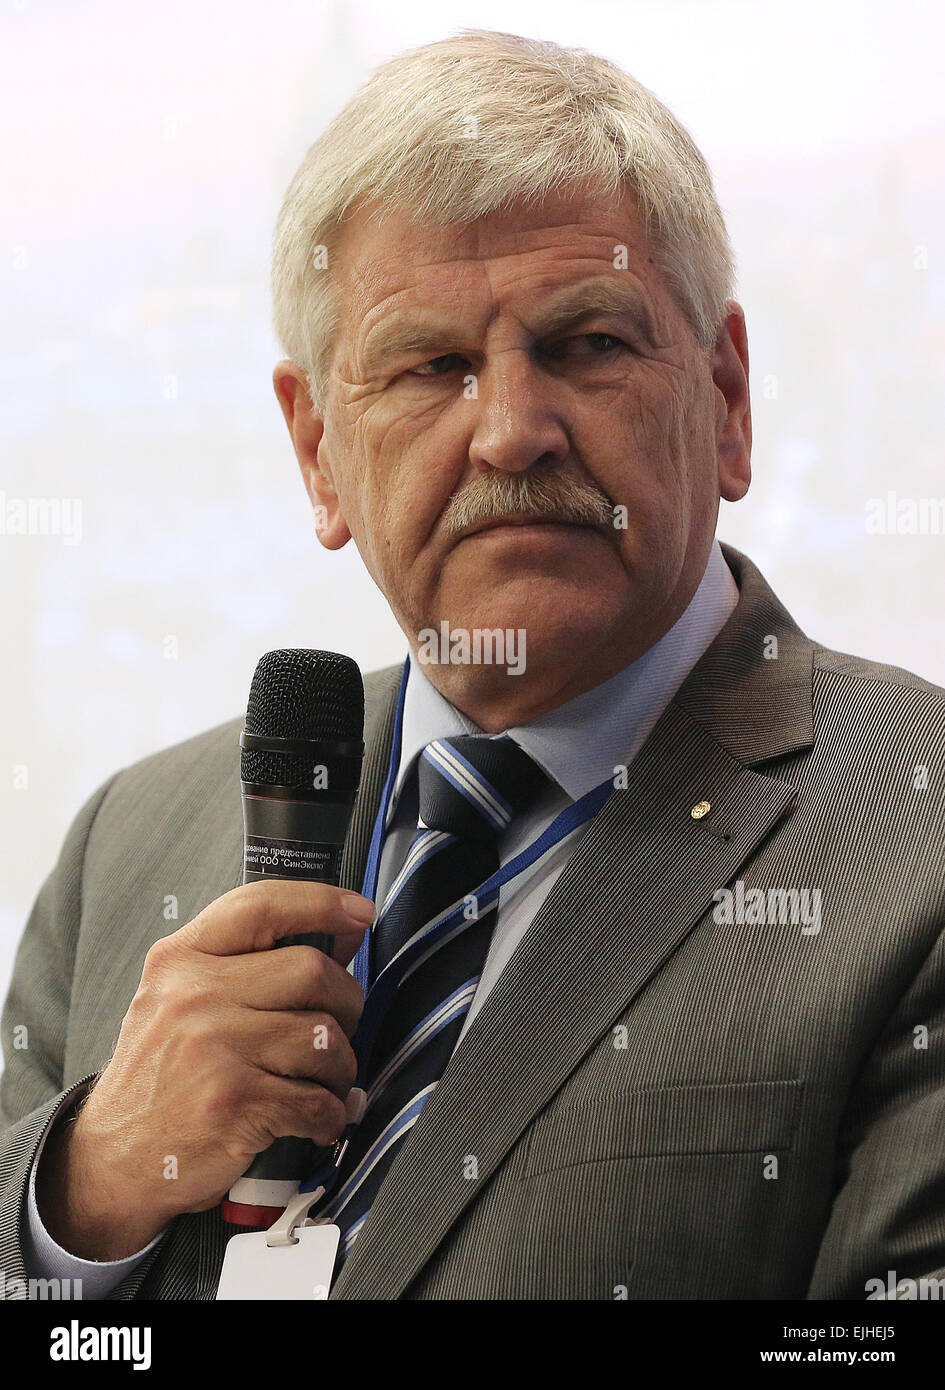 St. Petersburg, Russia. 22nd Mar, 2015. Udo Voigt, member of the European Parliament, attends the 2015 International Russian Conservative Forum in St. Petersburg. © Ruslan Shamukov/TASS/Alamy Live News Stock Photo